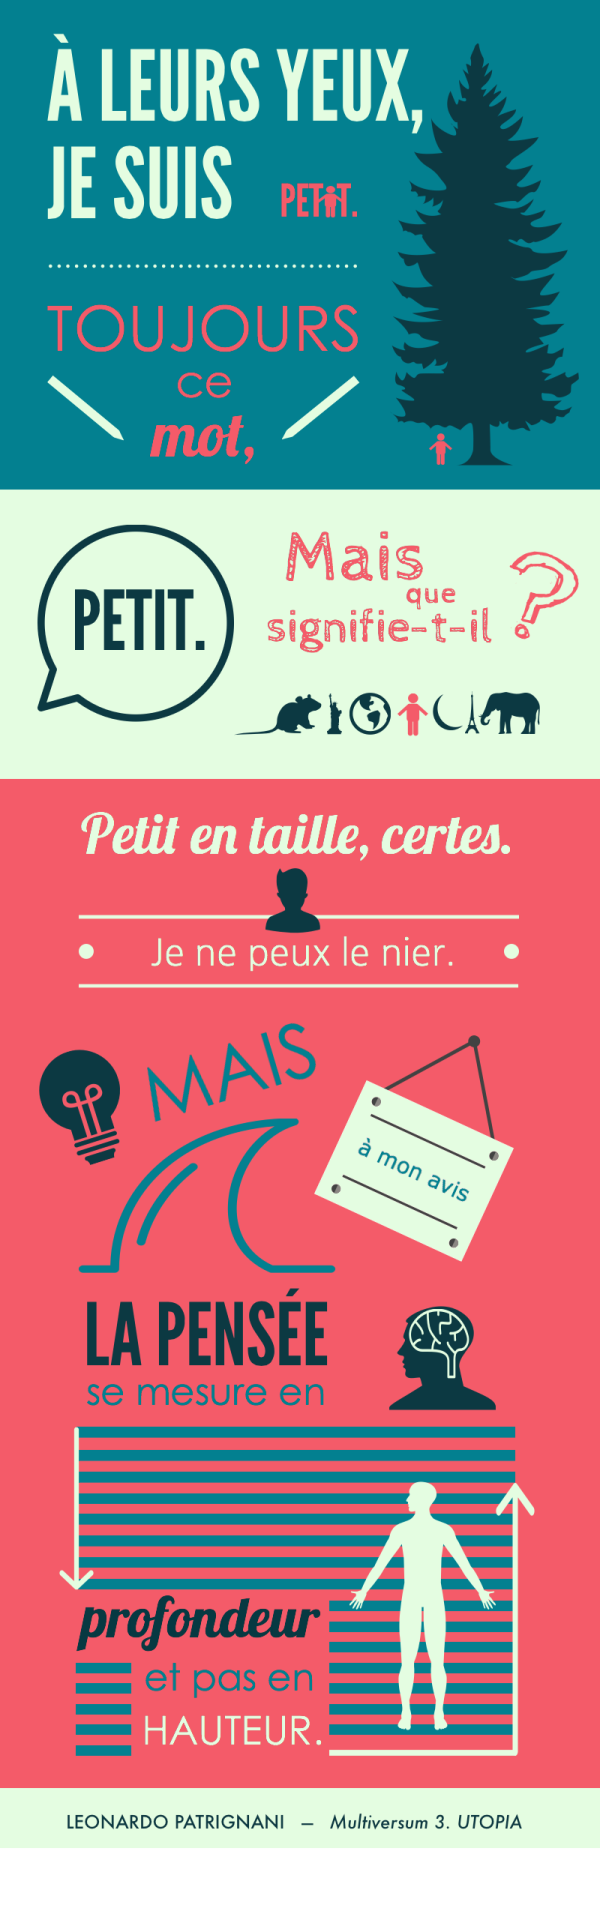 Citation Patrignani Multiversum Infographie Lupiot